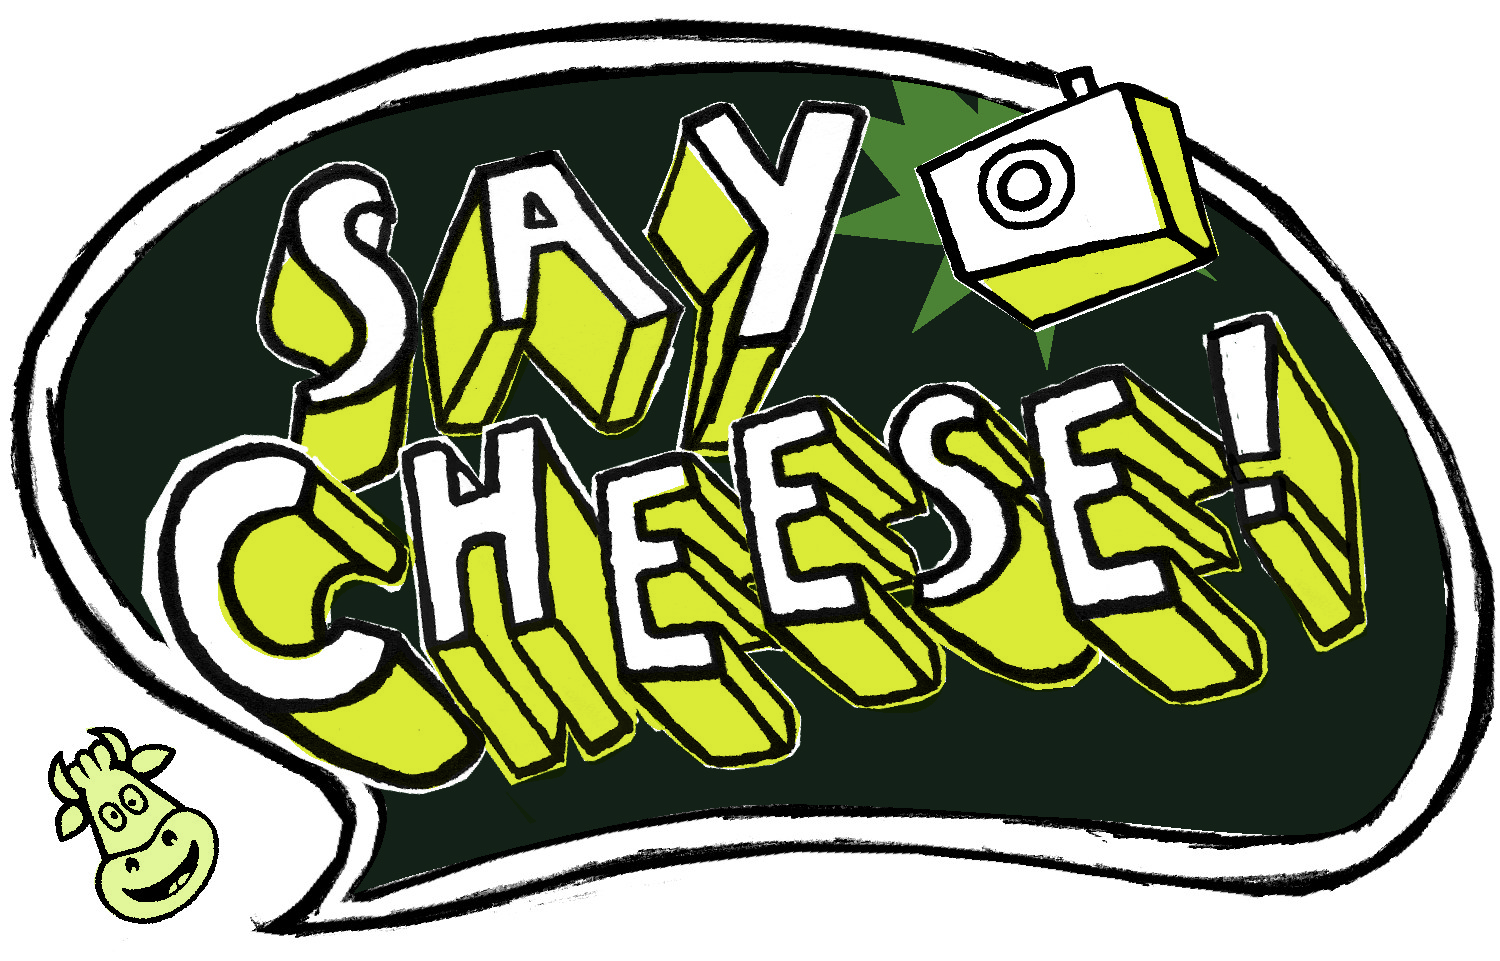 Say cheese clipart 3 » Clipart Portal.